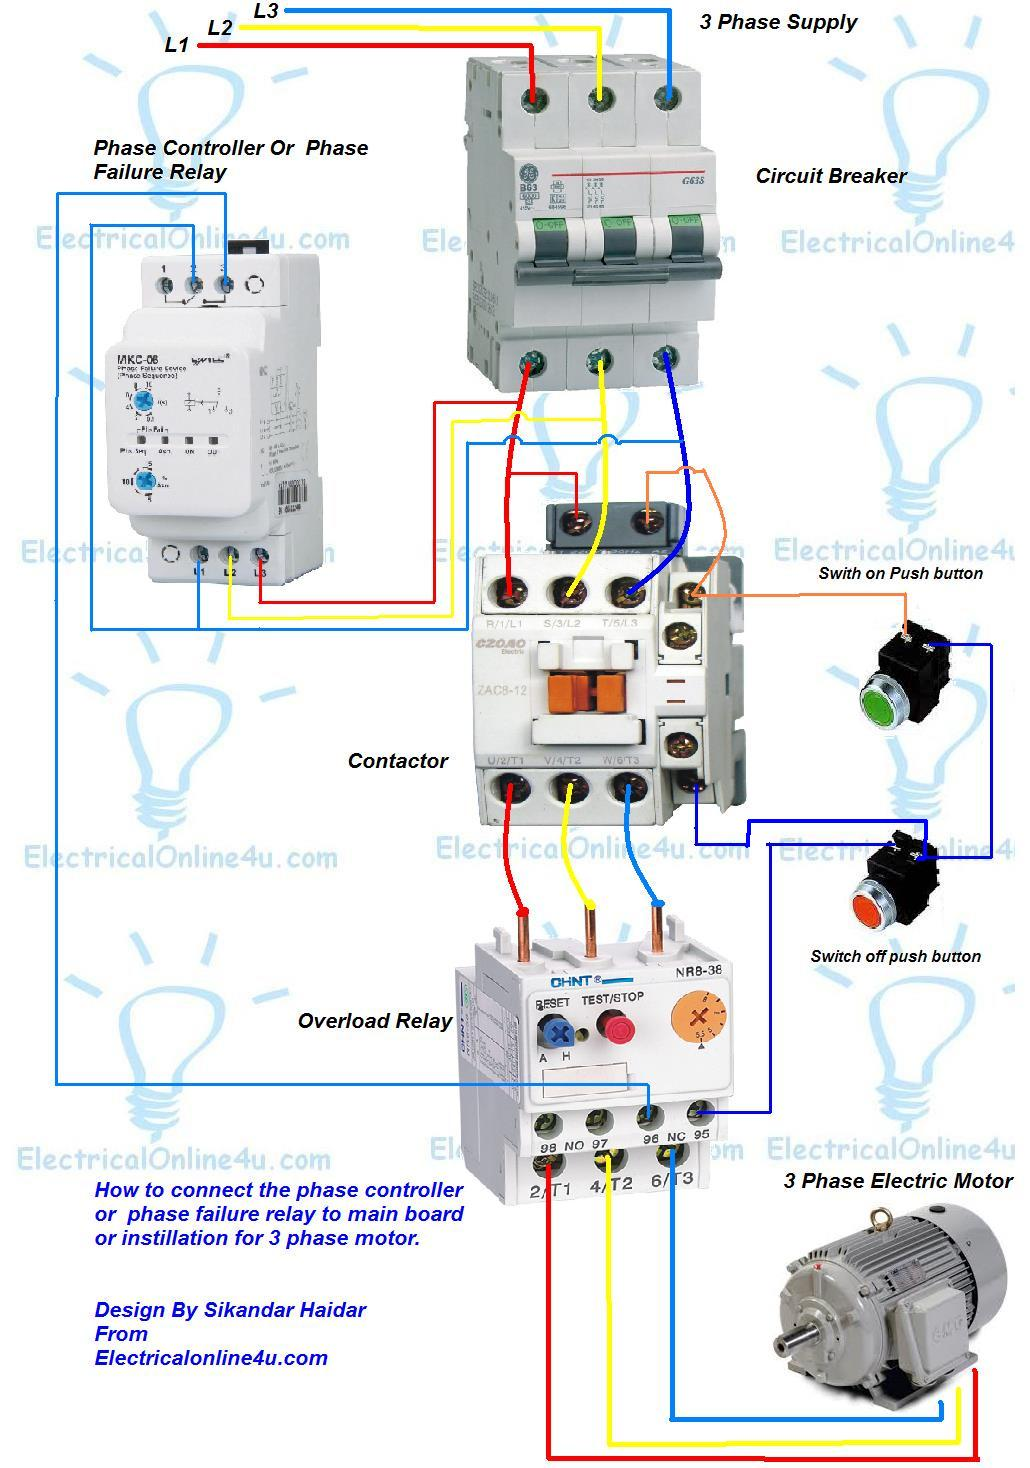 Phase controller wiring phase failure relay diagram electrical phase failure relay diagram asfbconference2016 Choice Image